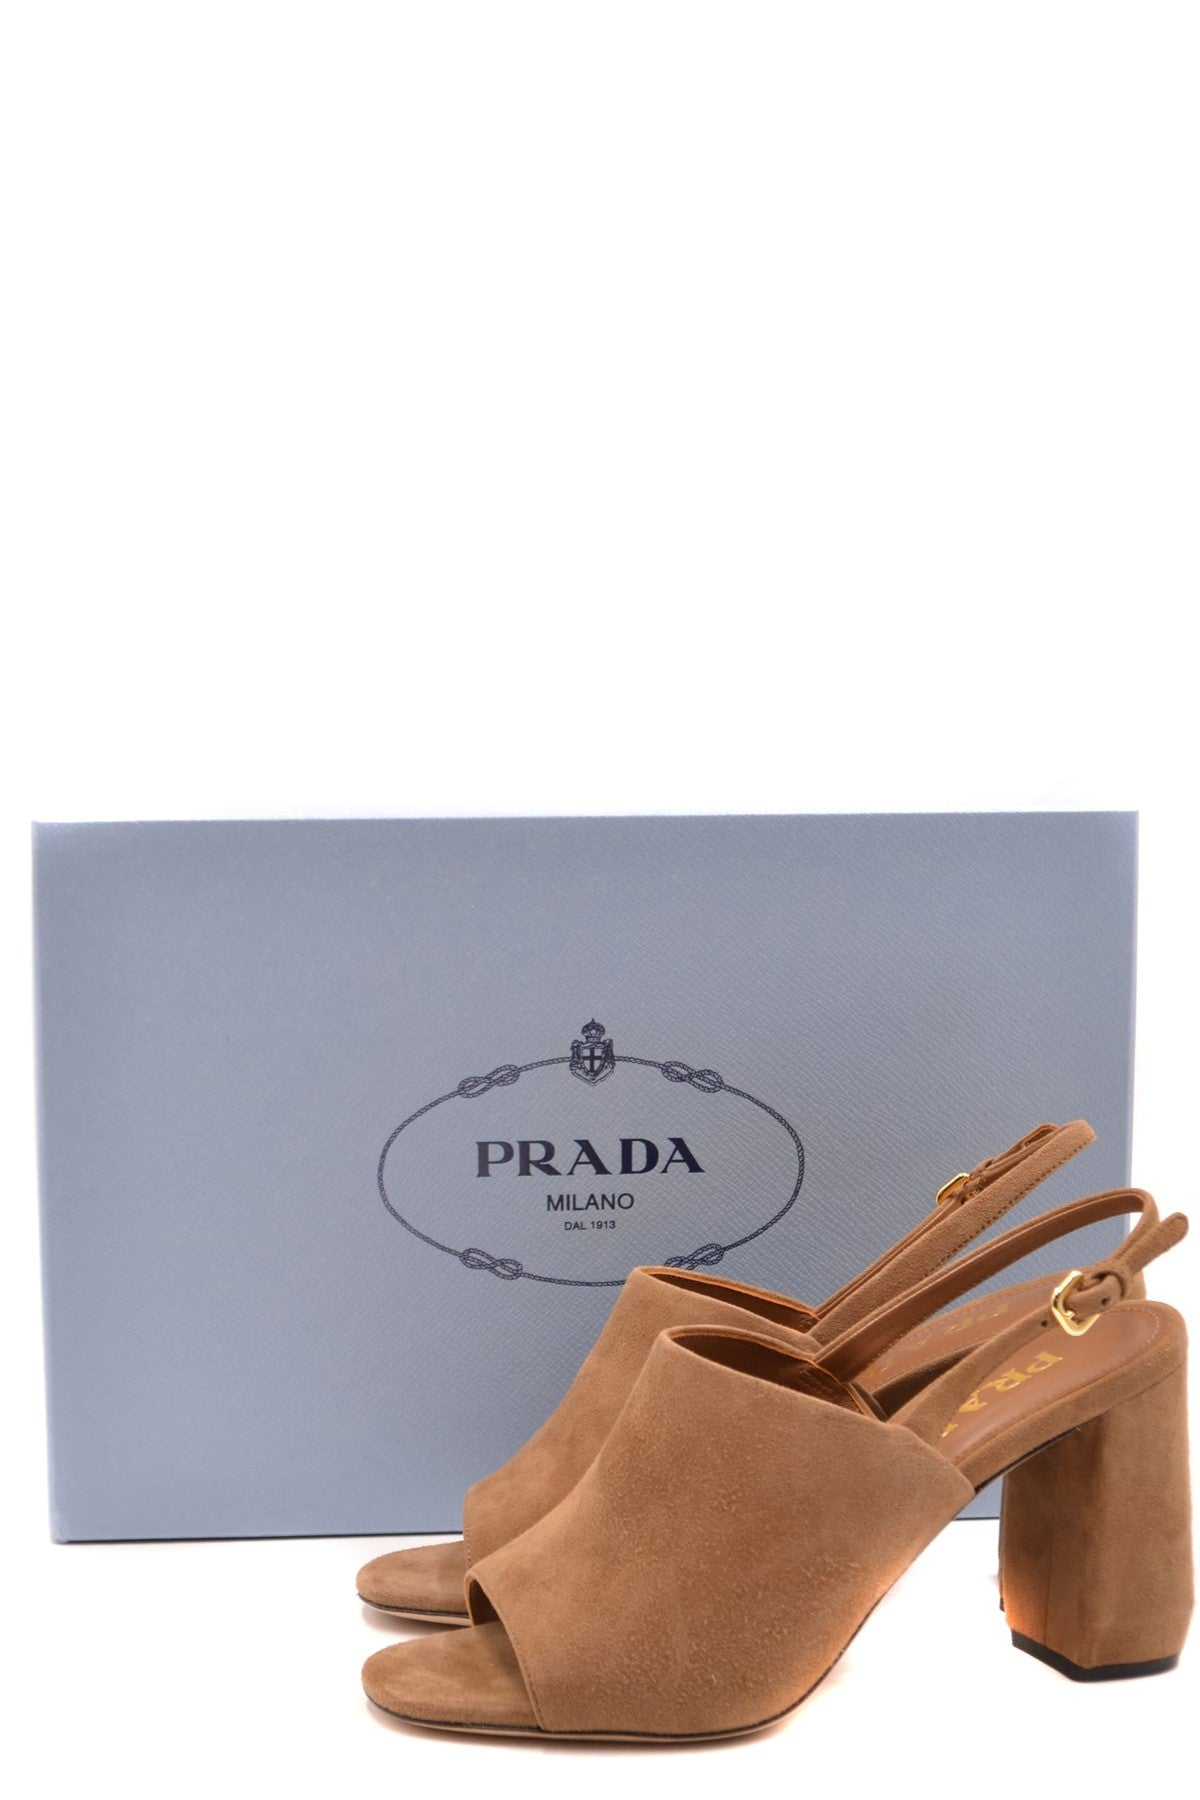 Shoes Prada-Women's Fashion - Women's Shoes - Women's Sandals-Product Details Terms: New With LabelMain Color: MarrónType Of Accessory: ShoesSeason: Spring / SummerMade In: ItalyGender: WomanHeel'S Height: 8Size: EuComposition: Chamois 100%Year: 2020Manufacturer Part Number: 1X677L 008 F0040 05-Keyomi-Sook